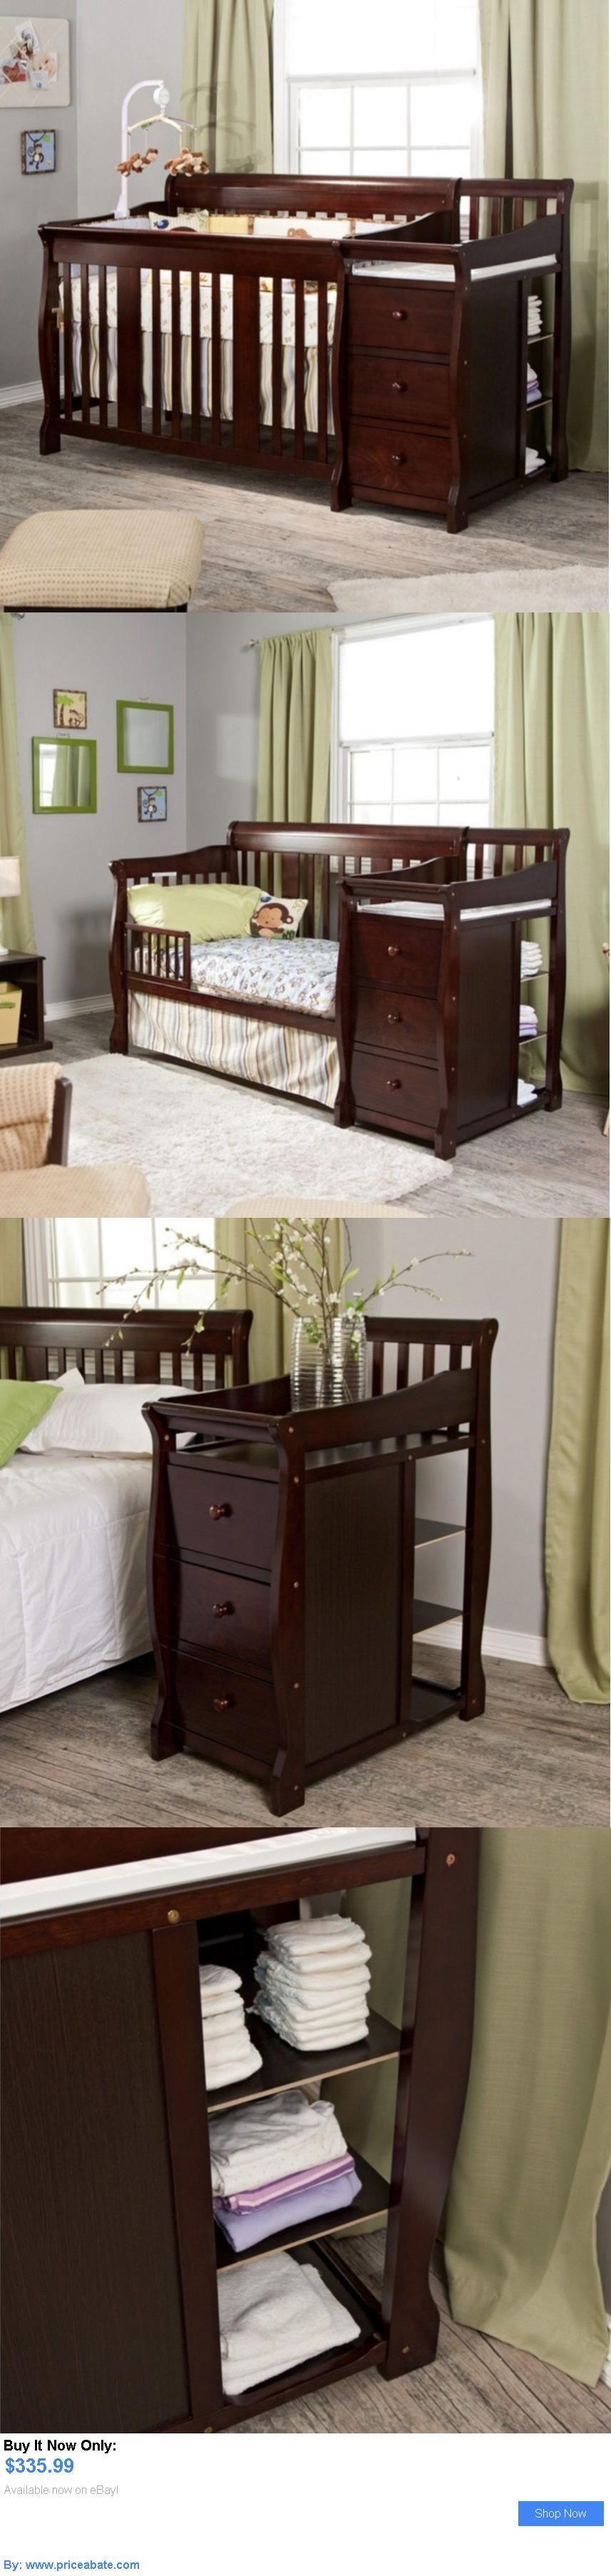 Baby Nursery: Convertible Baby Crib 4 In 1 With Changing Table Espresso  Fixed Side Toddler